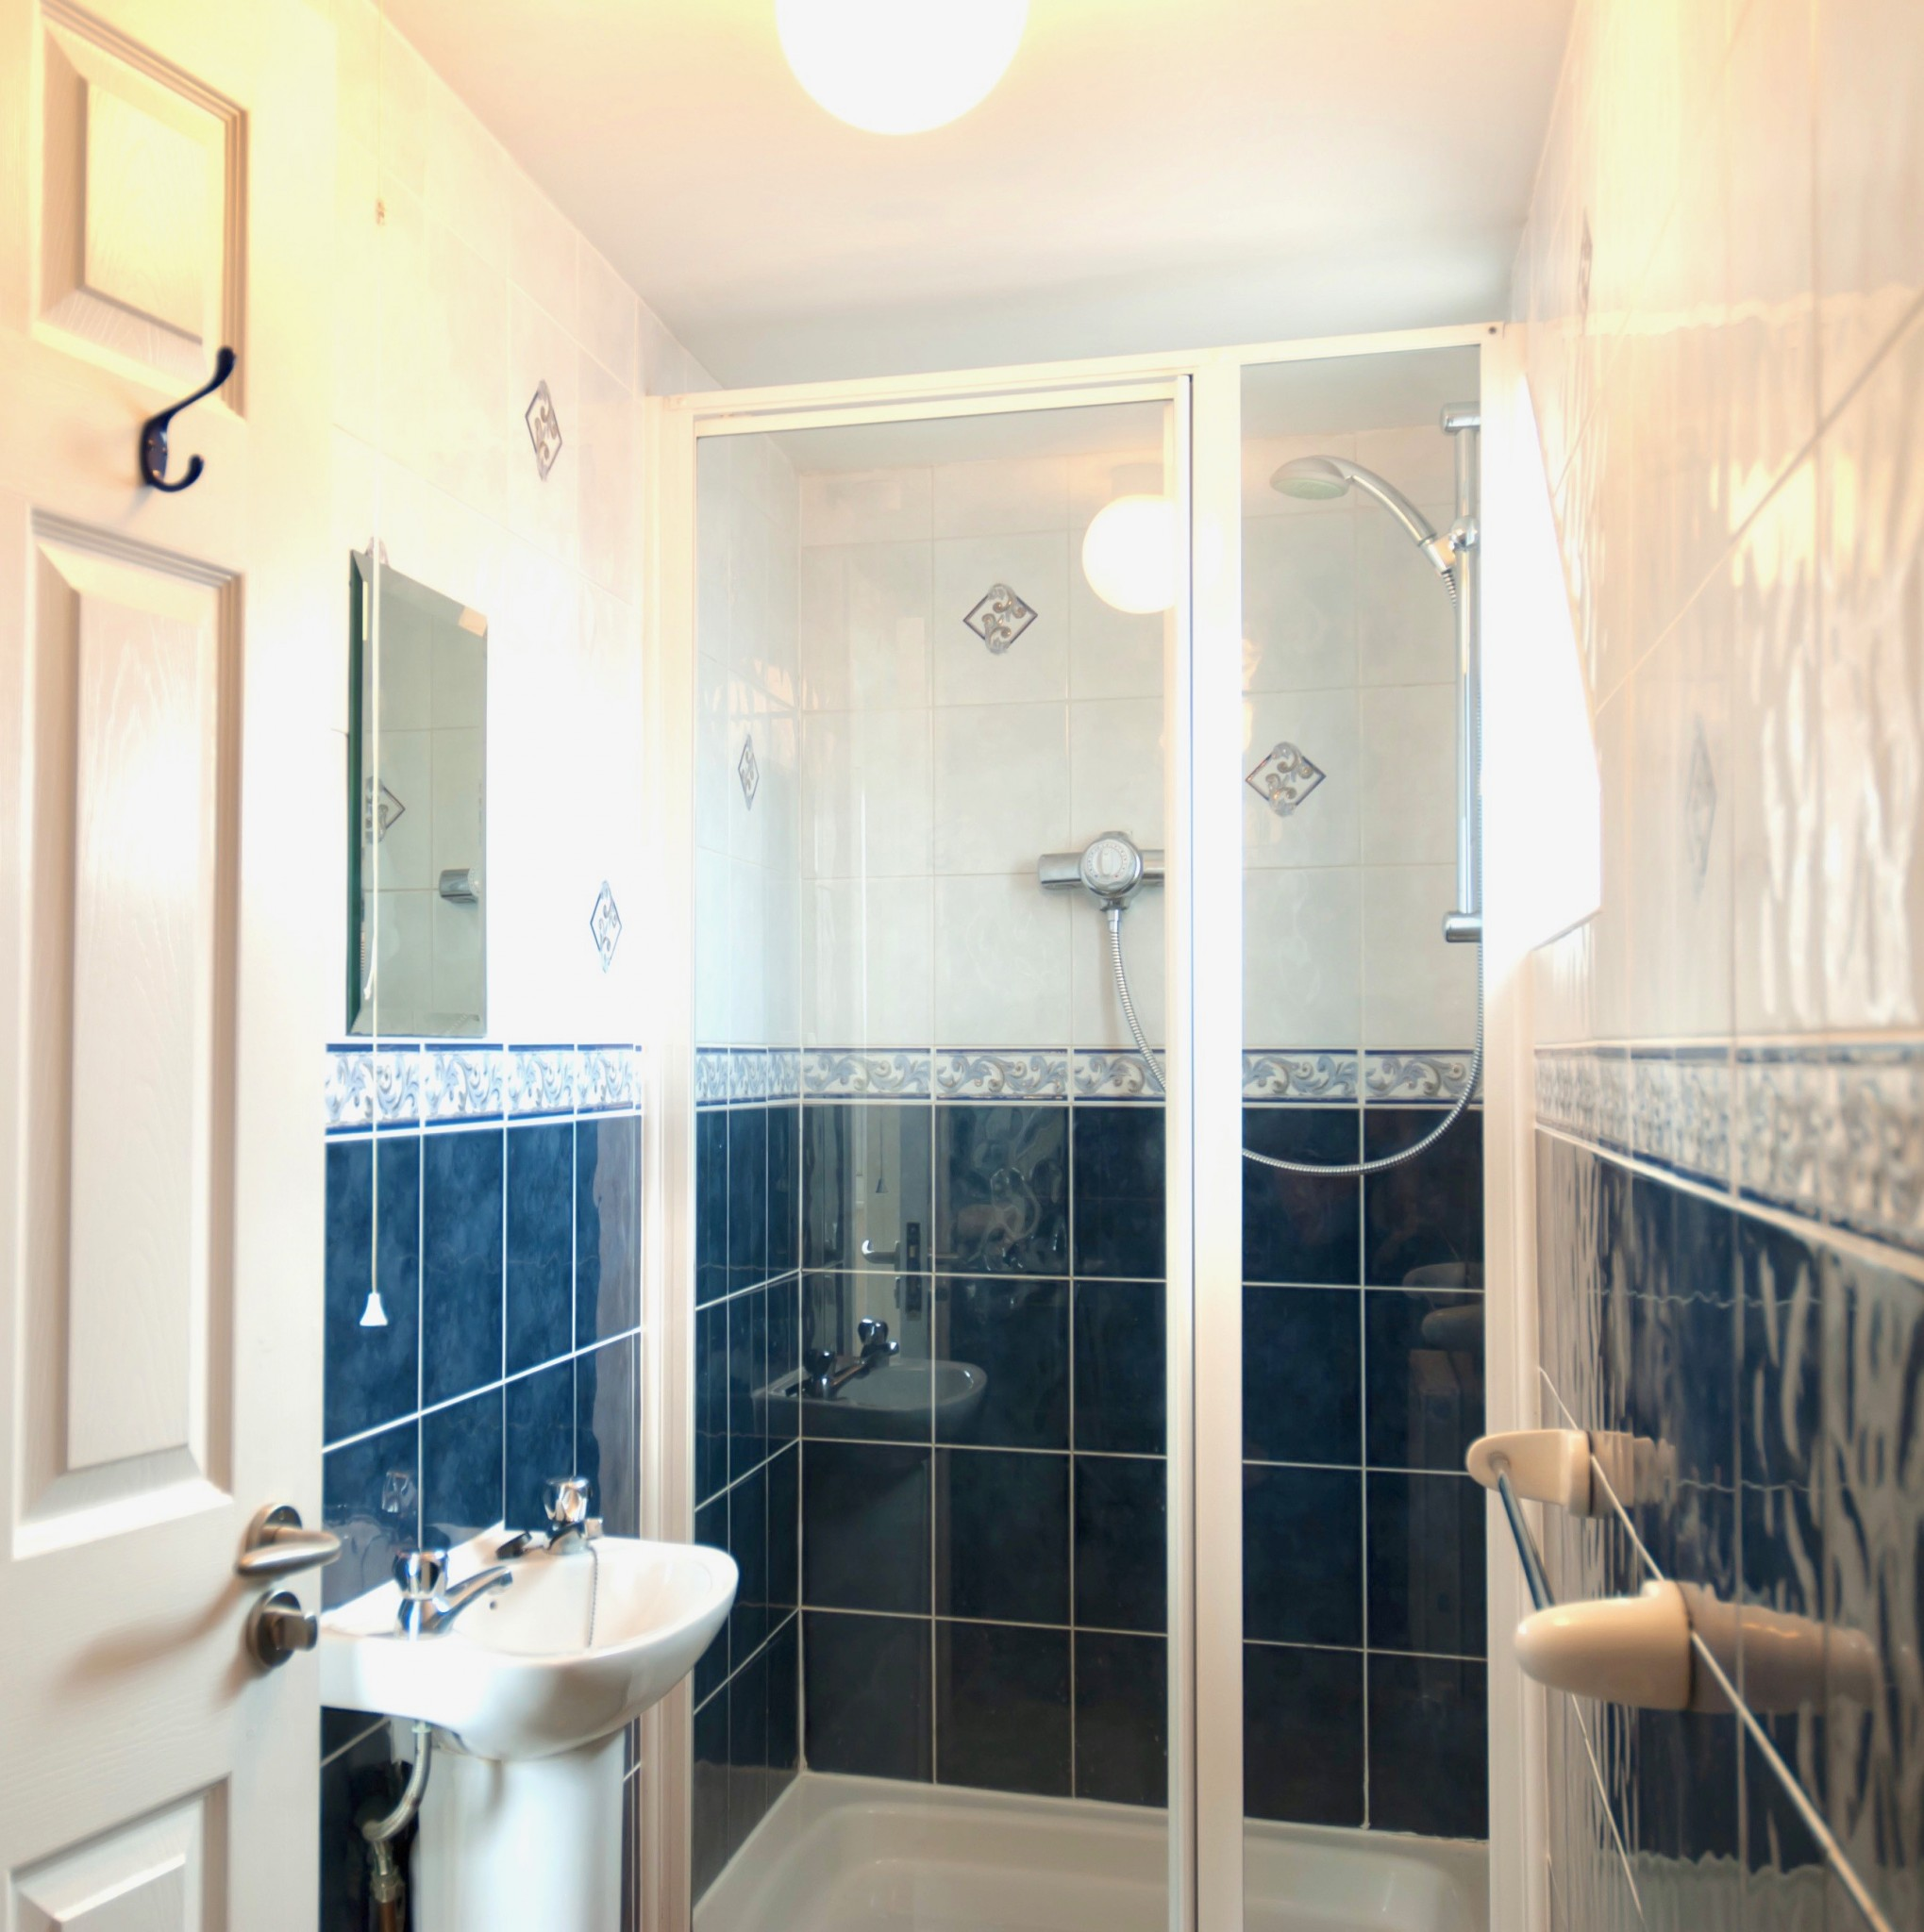 Double room available in Poole town centre – Sterte Rd